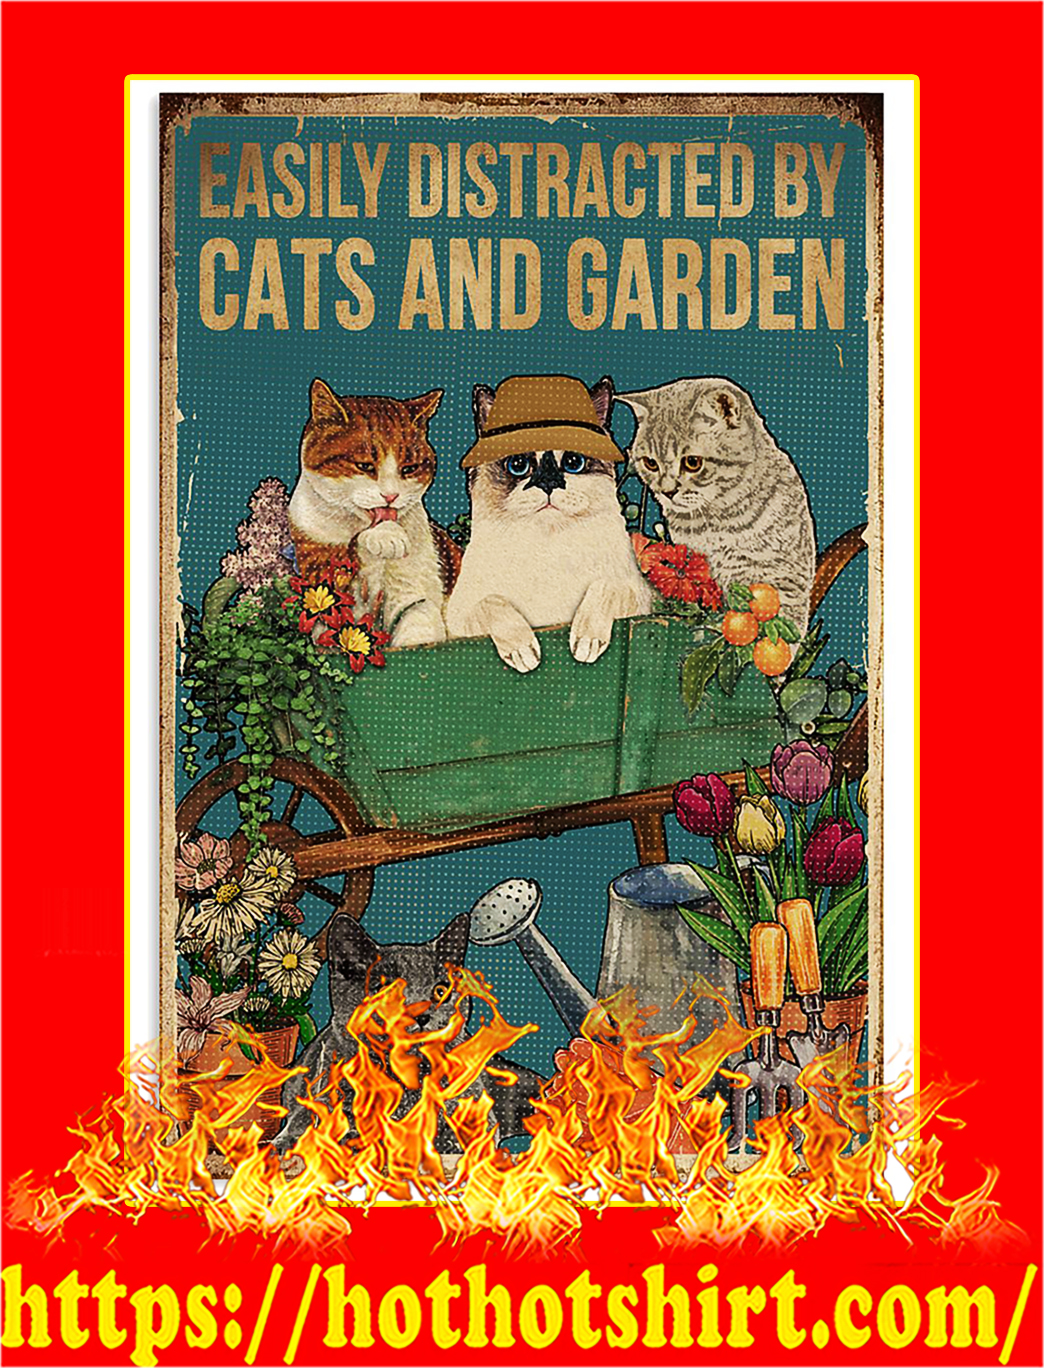 Retro Easily distracted by cats and garden poster- A1